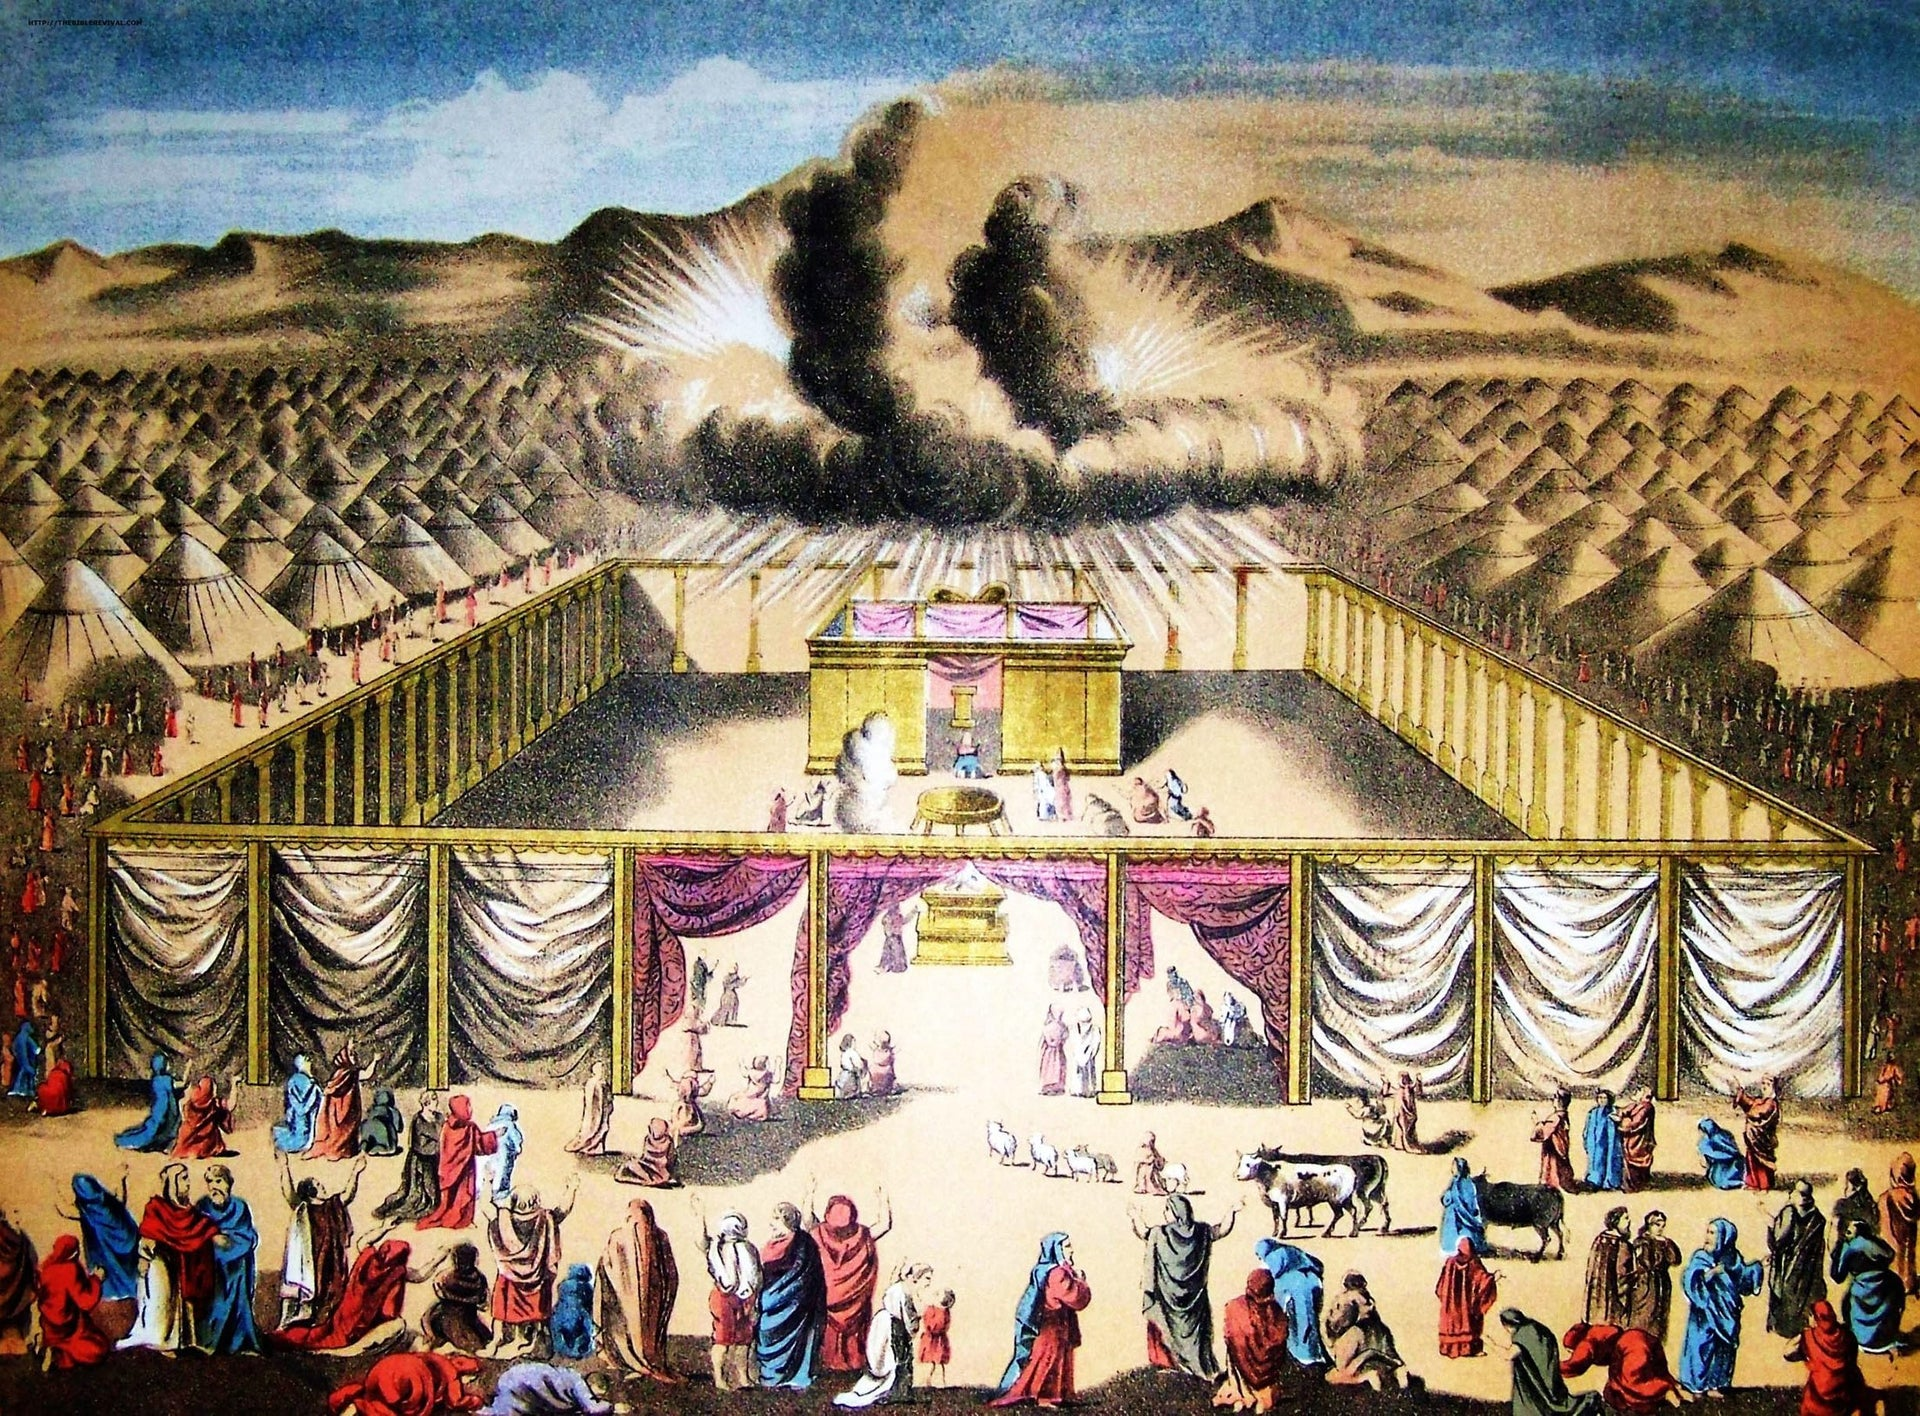 An 1890 illustration of the Tabernacle, with the presence of Yahweh signalled by a cloud of dark smoke.